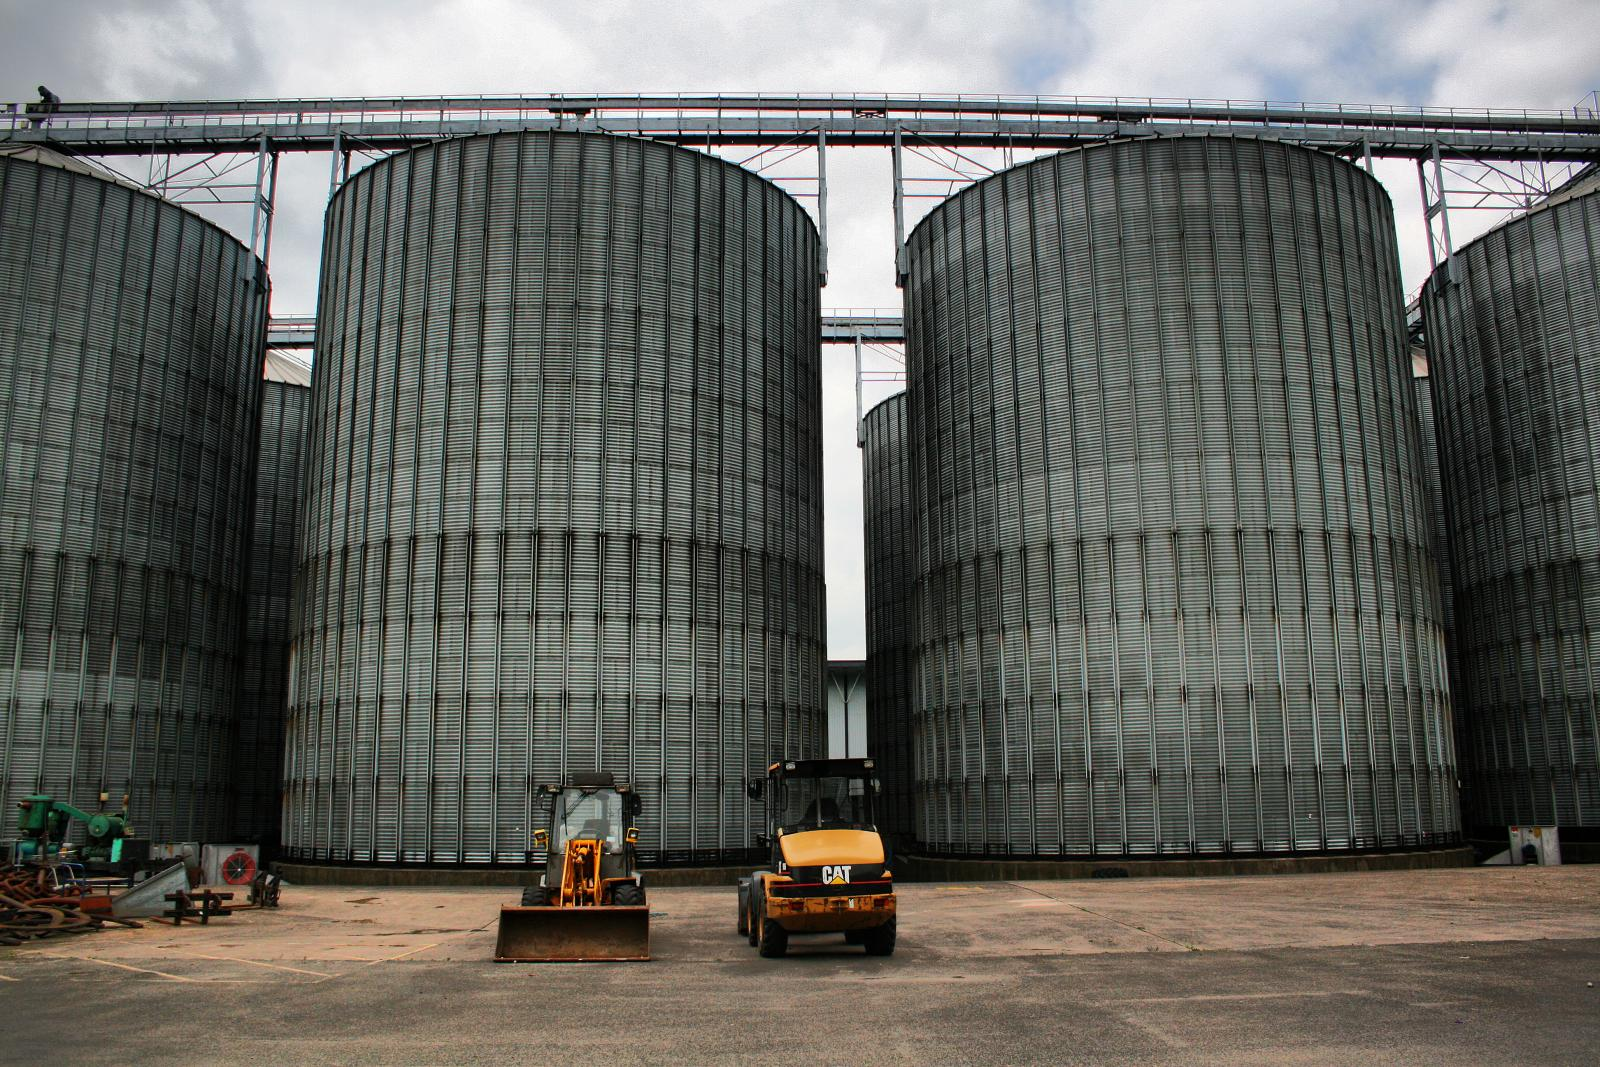 barley-silos-for-molson-coors-maltings